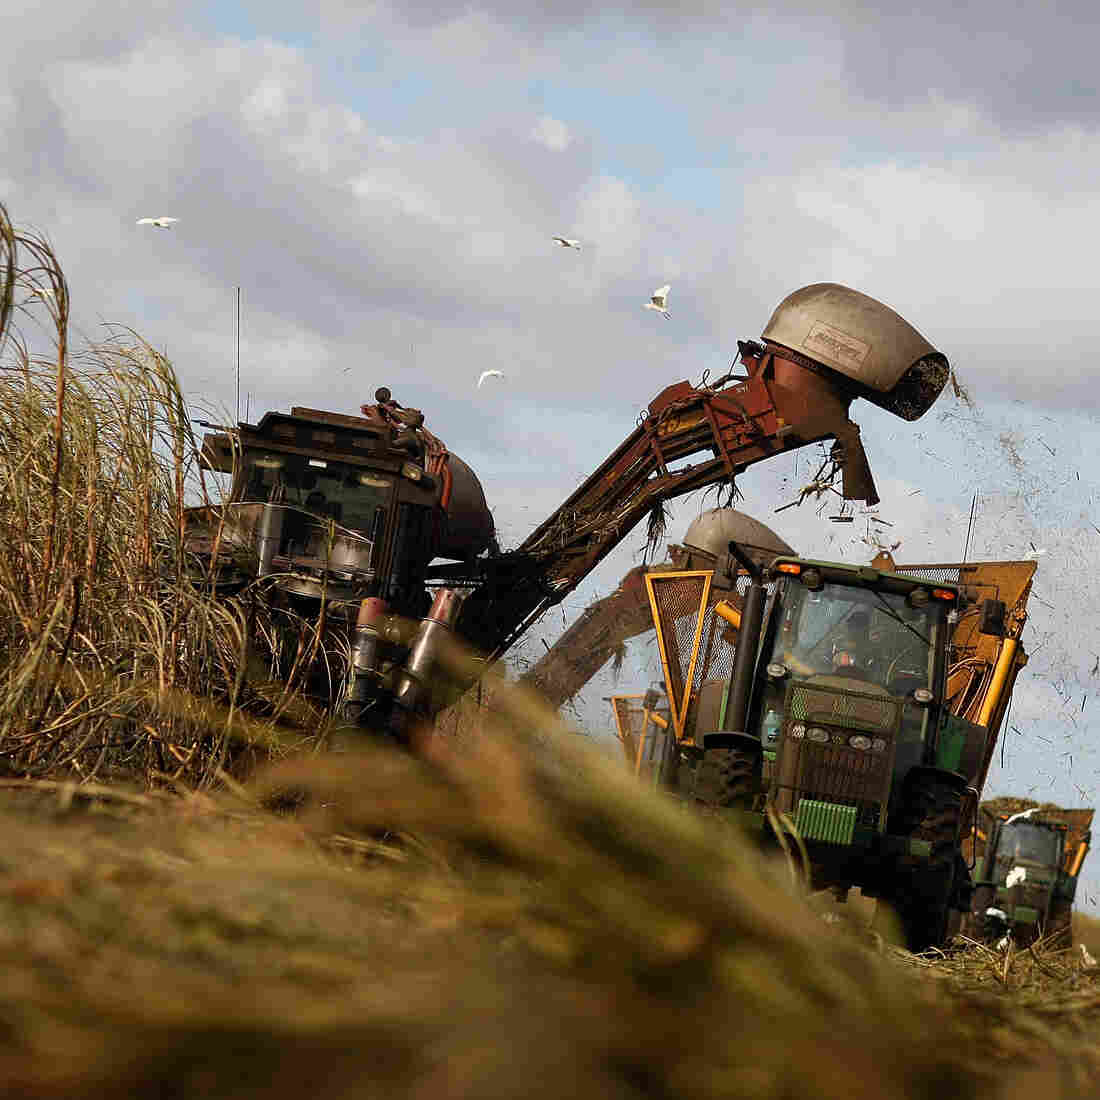 Mechanical harvesters cut sugar cane on U.S. Sugar Corp. land in Clewiston, Fla., in 2008, the same year the state struck a deal to buy most of the company's Everglades holdings.